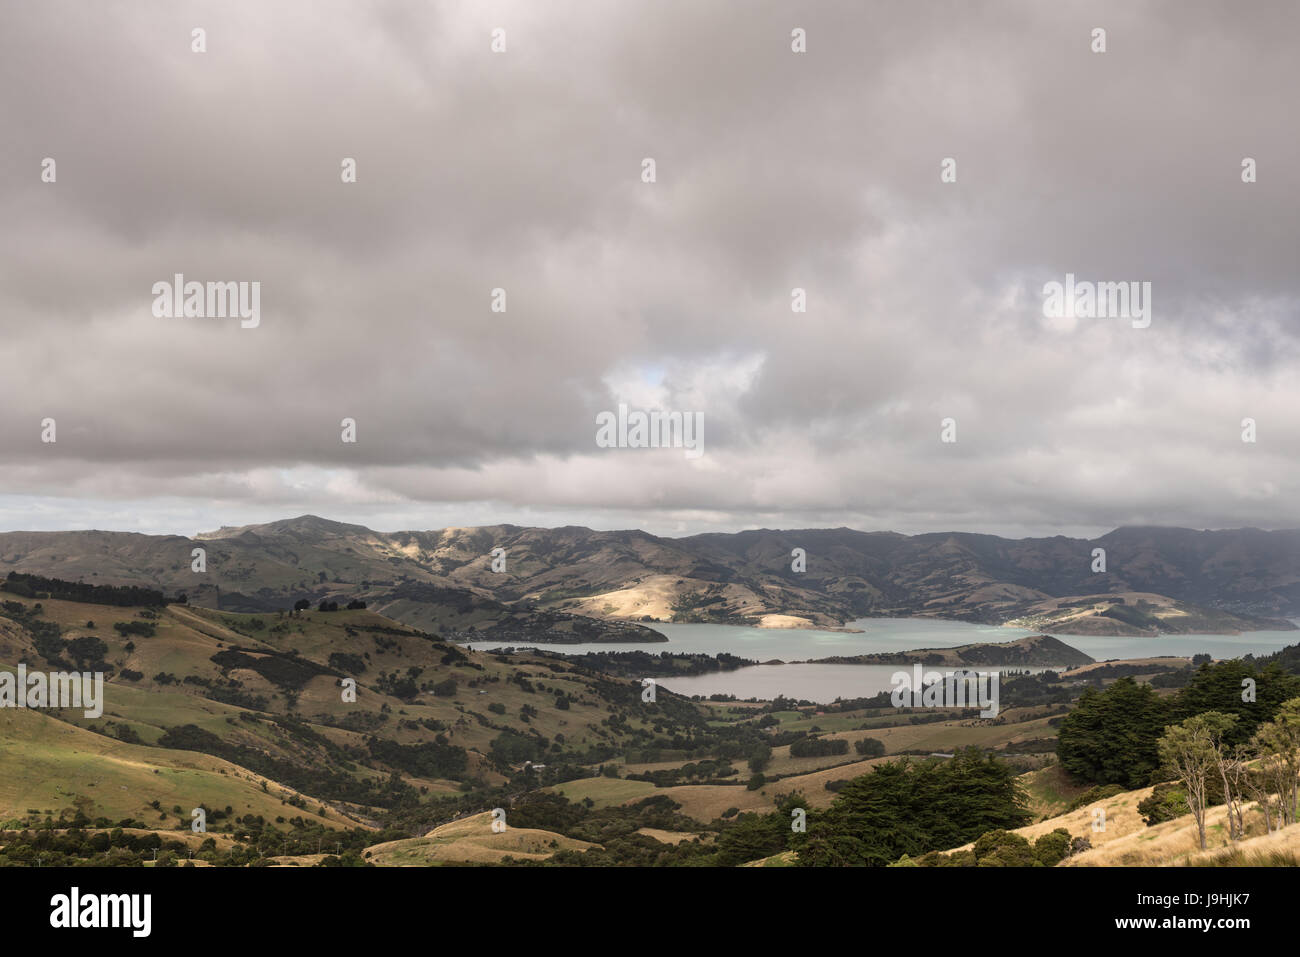 Akaroa, New Zealand - March 14, 2017: The Akaroa Sound is an inlet from Pacific ocean in the remnants of a Miocene - Stock Image